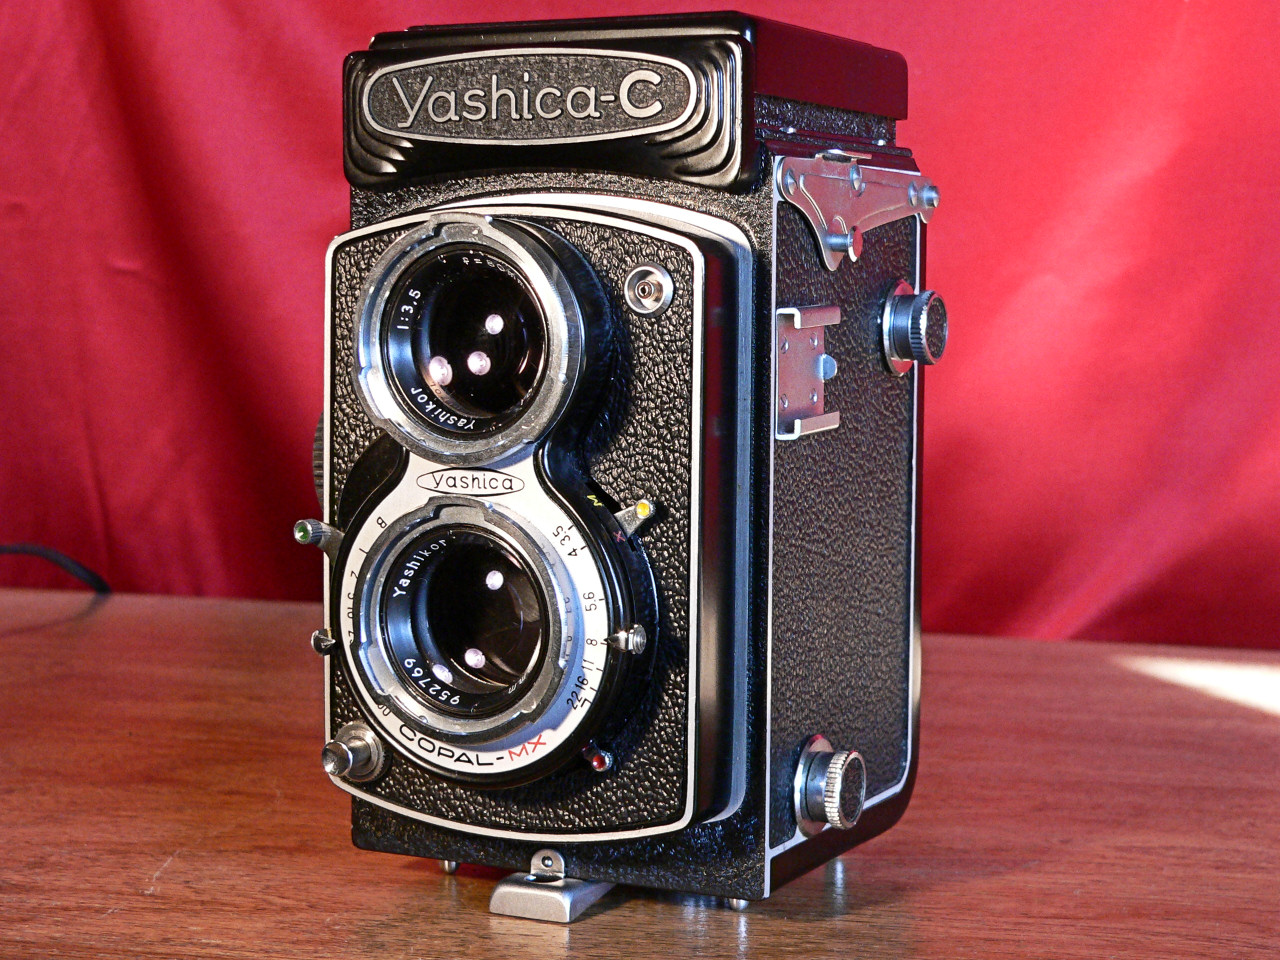 Yashica C TLR 6x6 Medium Format 120mm Roll Film Left Side View (1957-1958]